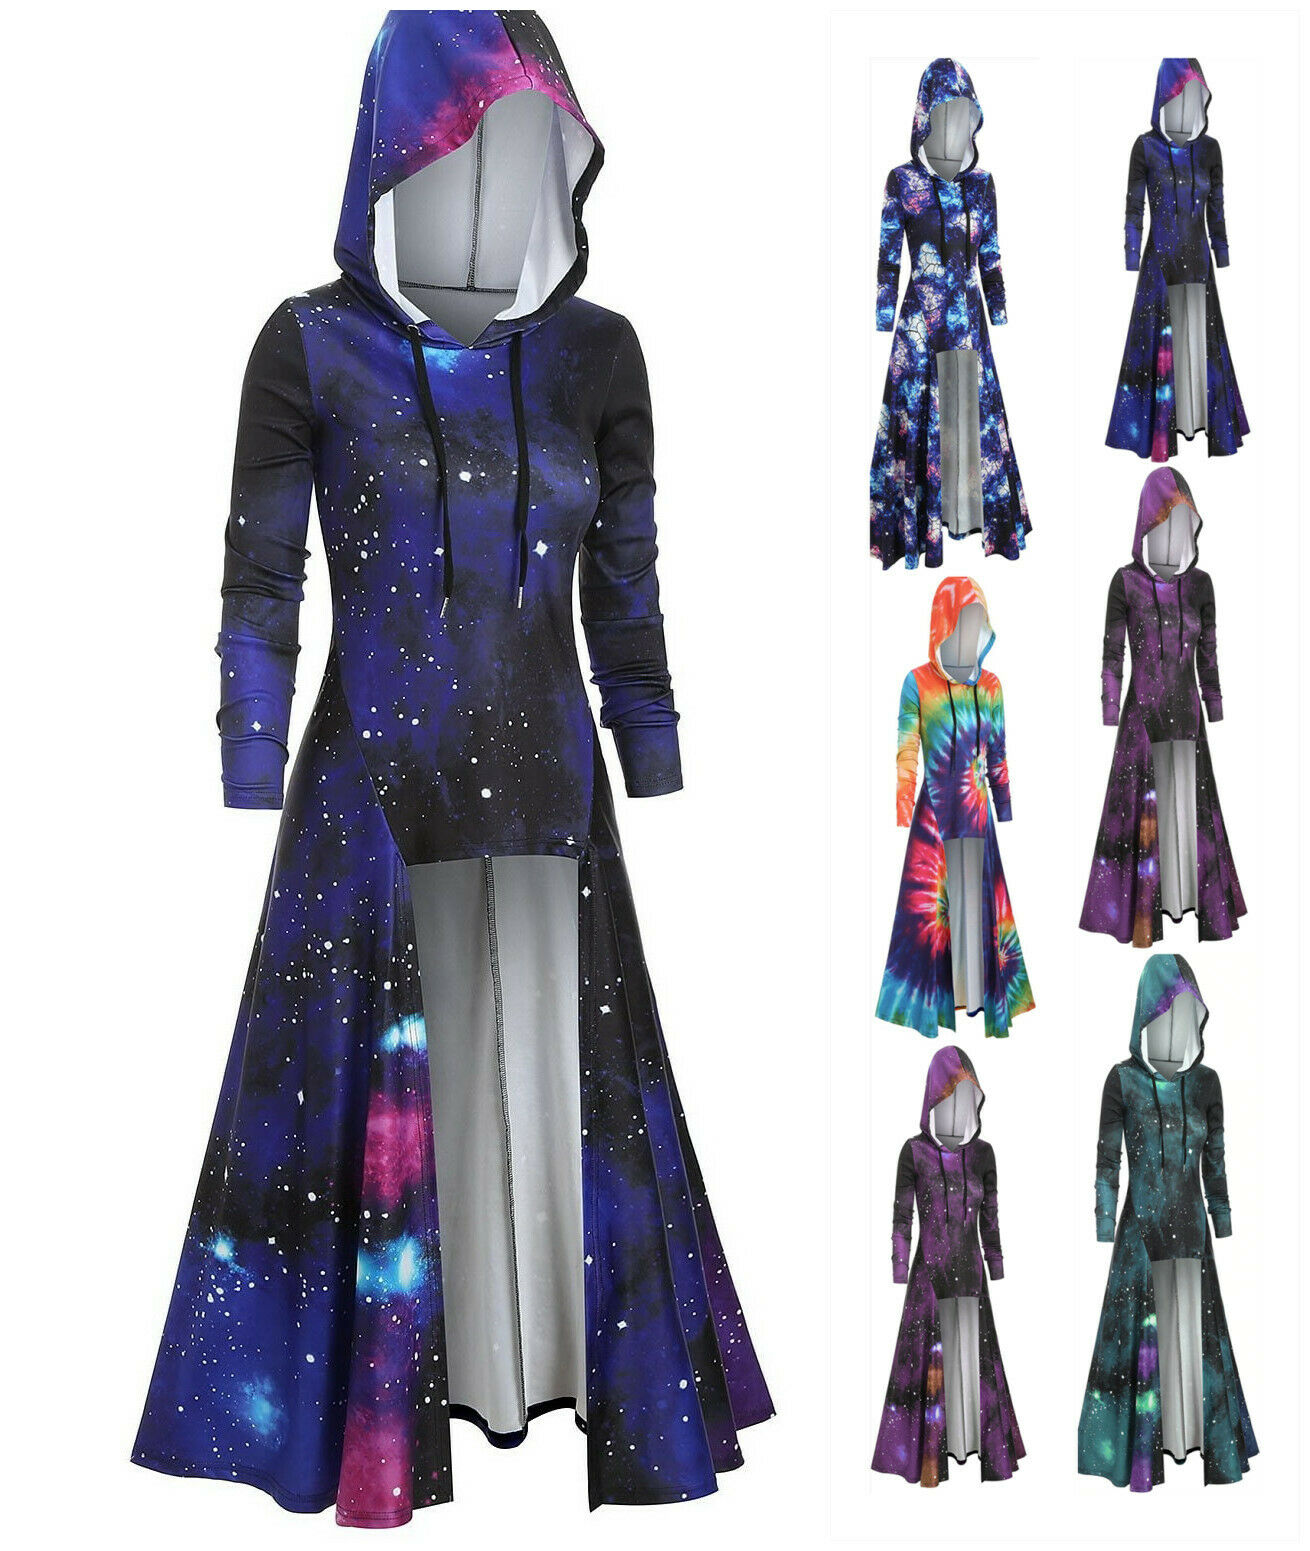 Plus Size Women Pullover Gothic Low Hem Steampunk Hooded Tops Sweater Coat High